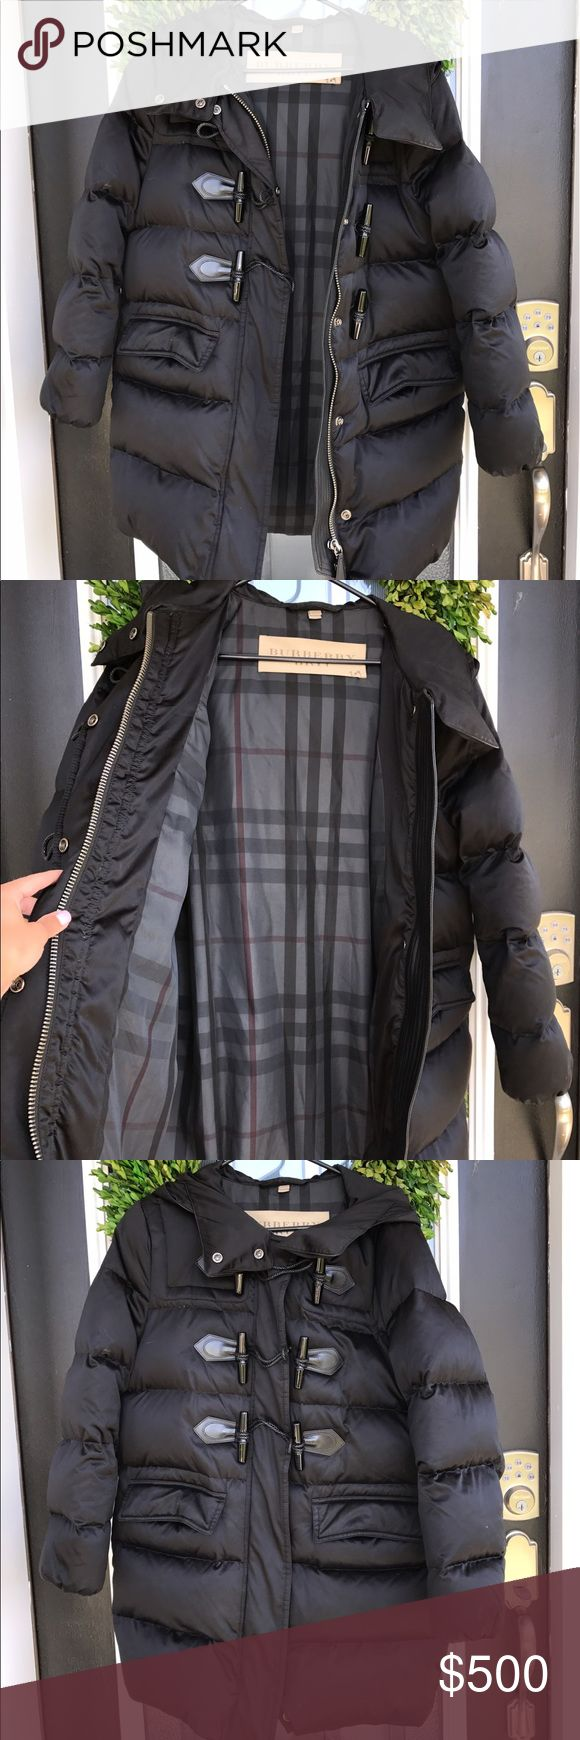 Burberry Britt Men's Puffer Coat Burberry Britt Men's Puffer Coat in black. Has check pattern on inside. Size M. This has been worn twice over the winter but great condition. This coat is filled with down. There is one area on the left inside pocket where there is a rip in the material. This is NOT noticeable as it is inside the pocket. Can easily be fixed. Ink mark on Burberry tag! Beautiful Jacket! 💕 Burberry Jackets & Coats Puffers